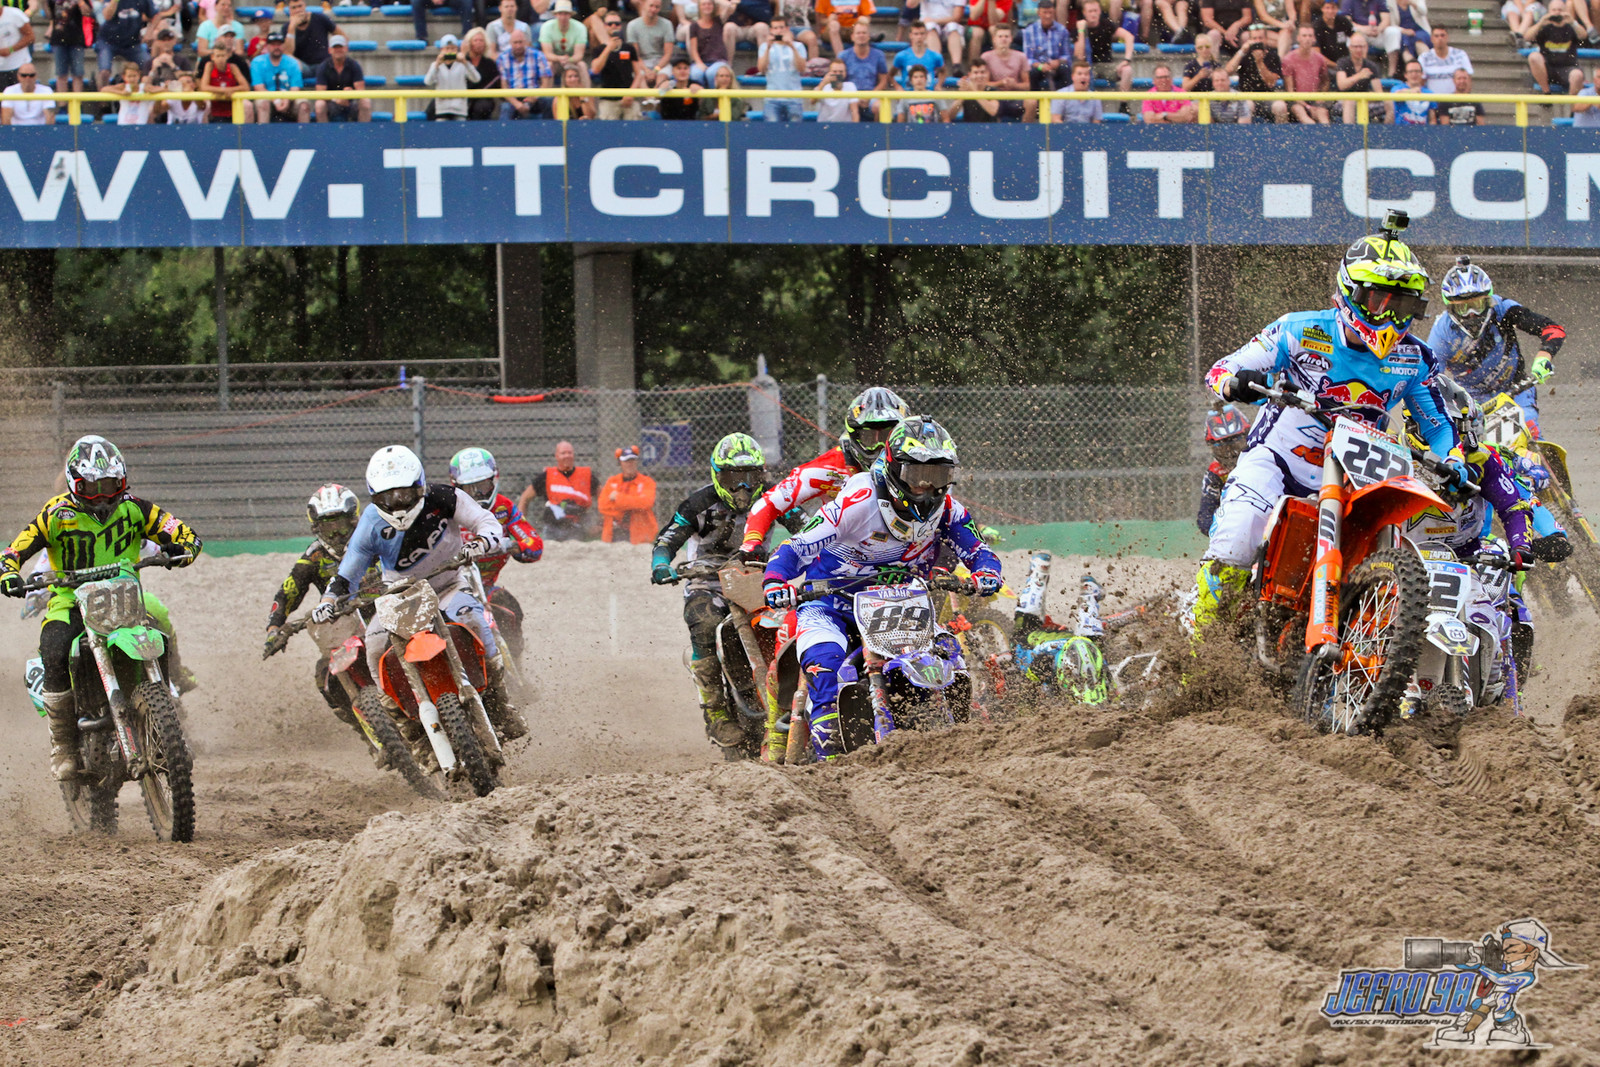 MXGP Moto 2 Start - Photo Gallery: MXGP of the Netherlands - Motocross Pictures - Vital MX